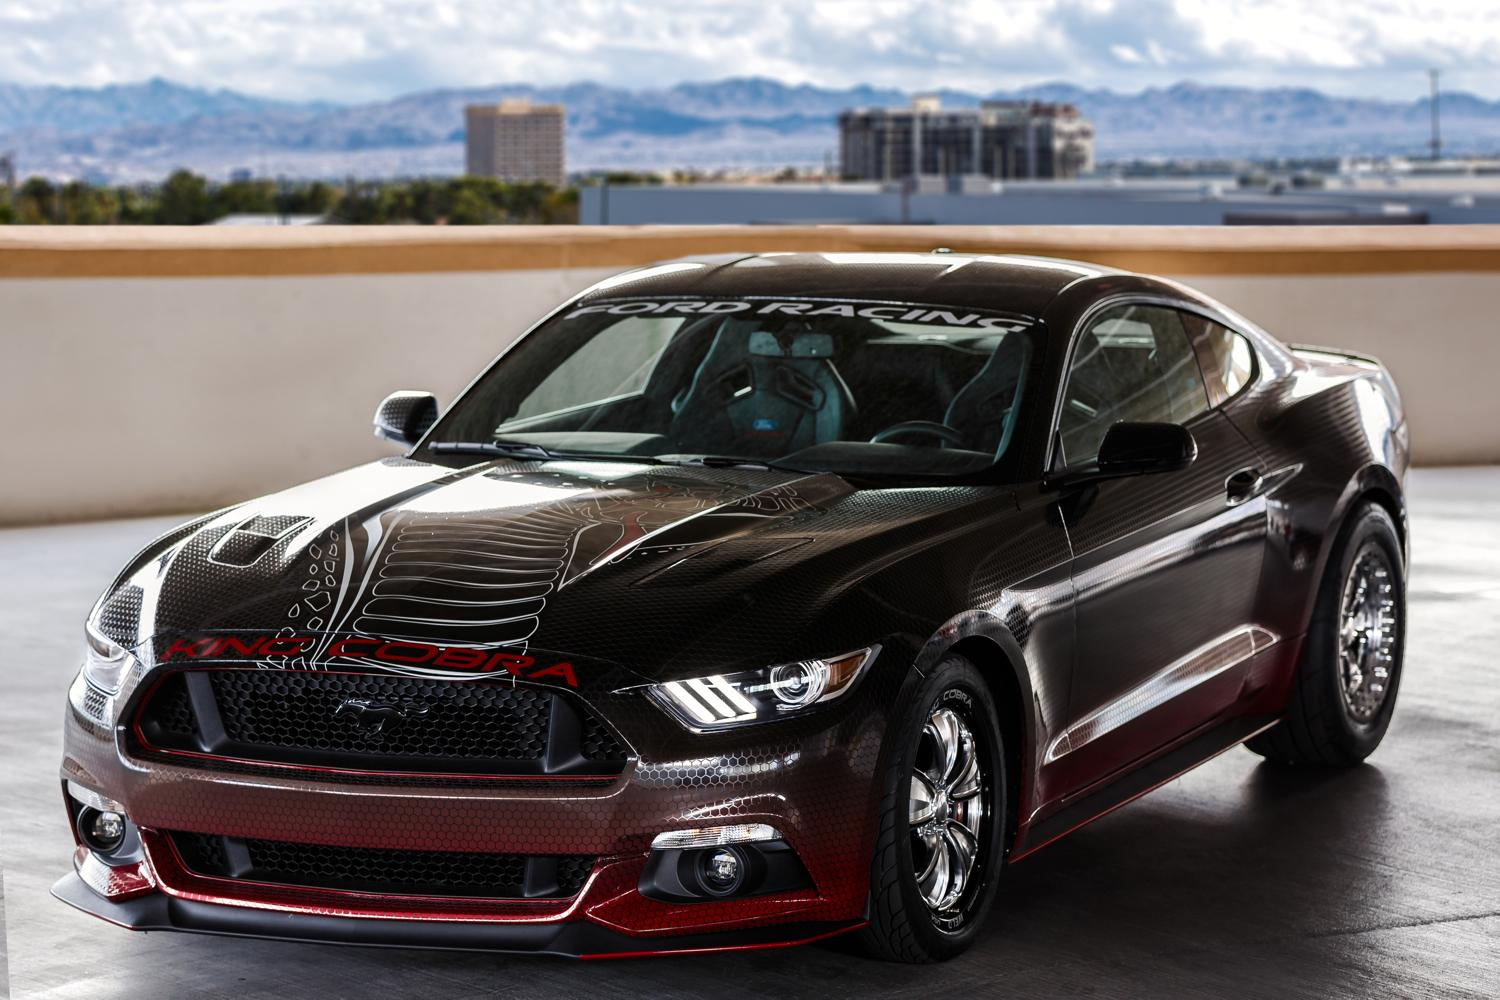 joke, Ford's new Mustang King Cobra bites hard with over 600 hp